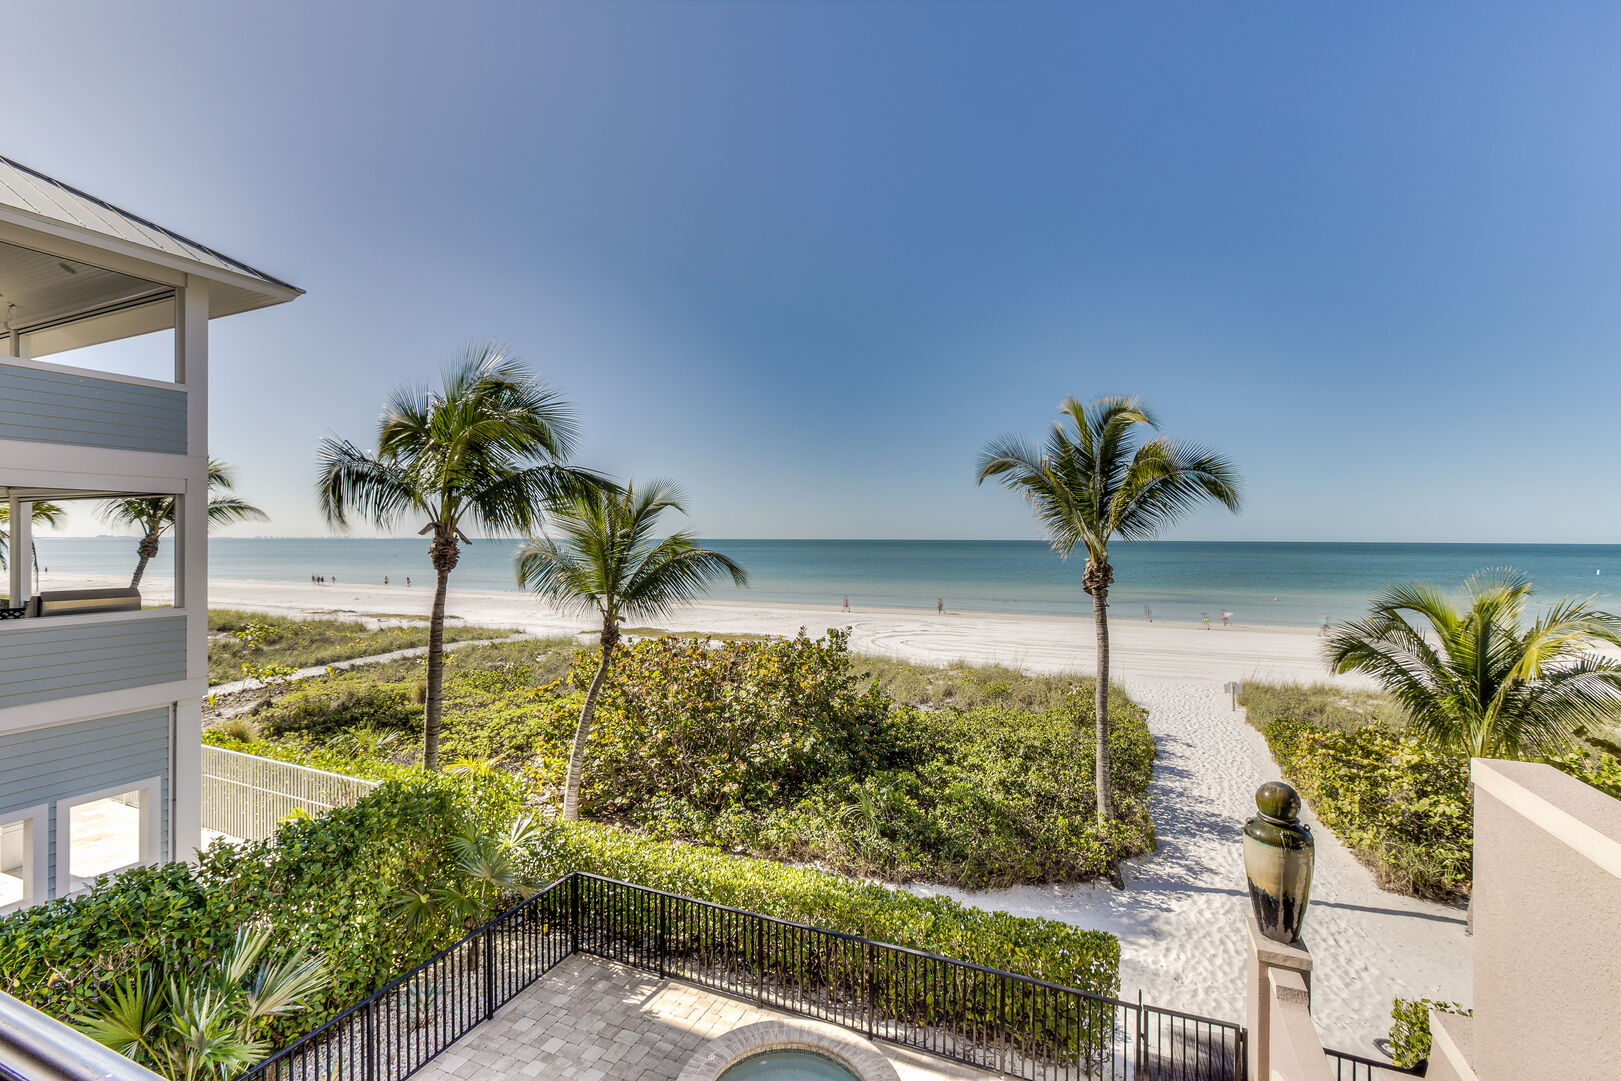 Beach views from our Fort Myers vacation home rental